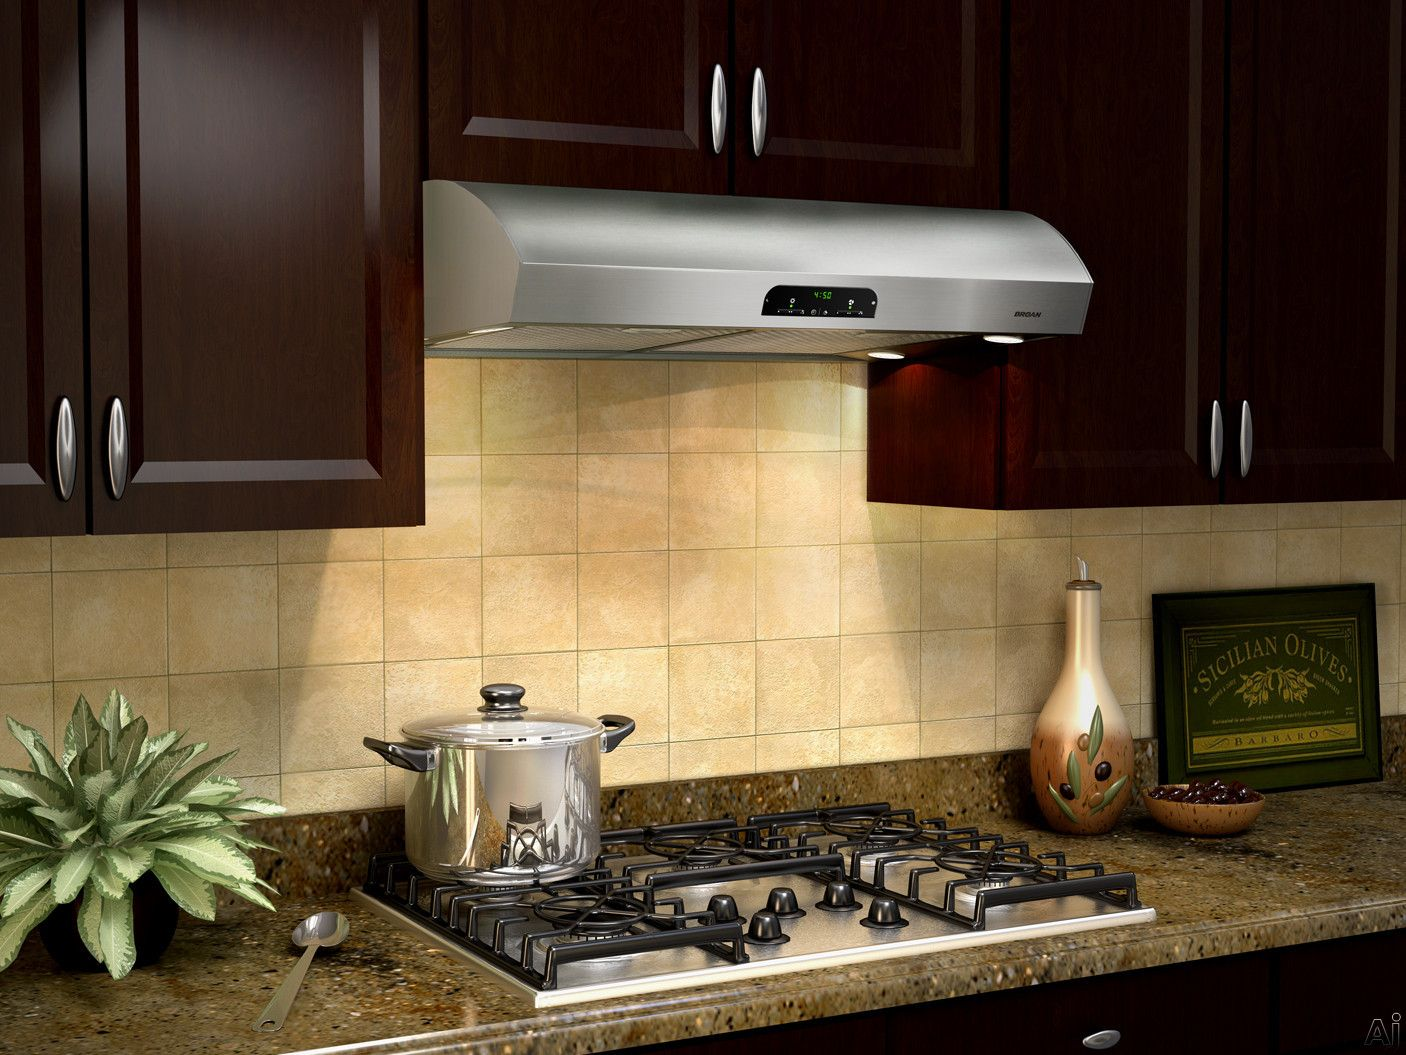 Broan Qp430ss Under Cabinet Range Hood With 630 Cfm Internal Blower Advanced Heat Sentry 4 Level Theatre Lighting Ambient Night Time Sensor And Mesh Filters Range Hood Under Cabinet Range Hoods Kitchen Cabinets